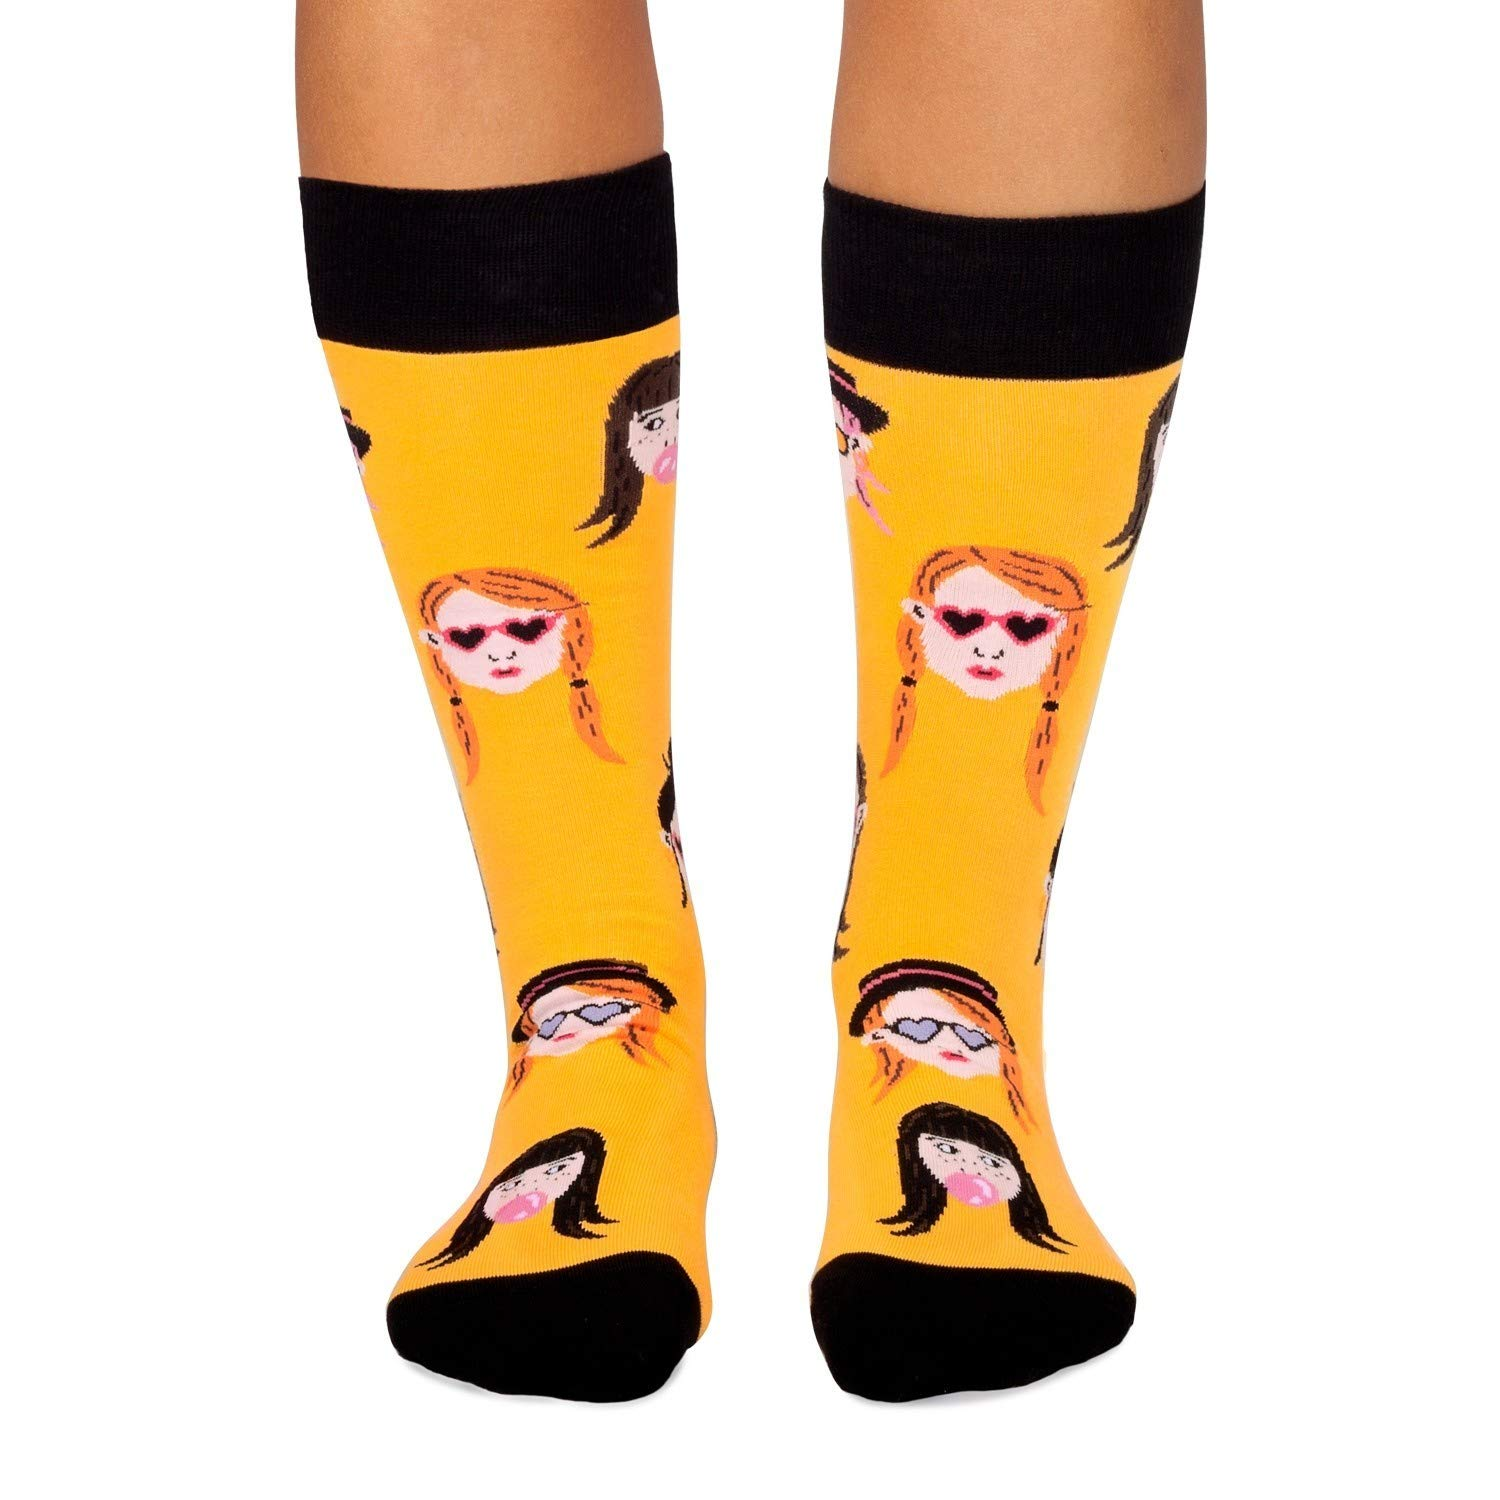 Jimmy Lion Calcetines Hipster Chica Amarillo Talla 41-46: Amazon.es: Ropa y accesorios